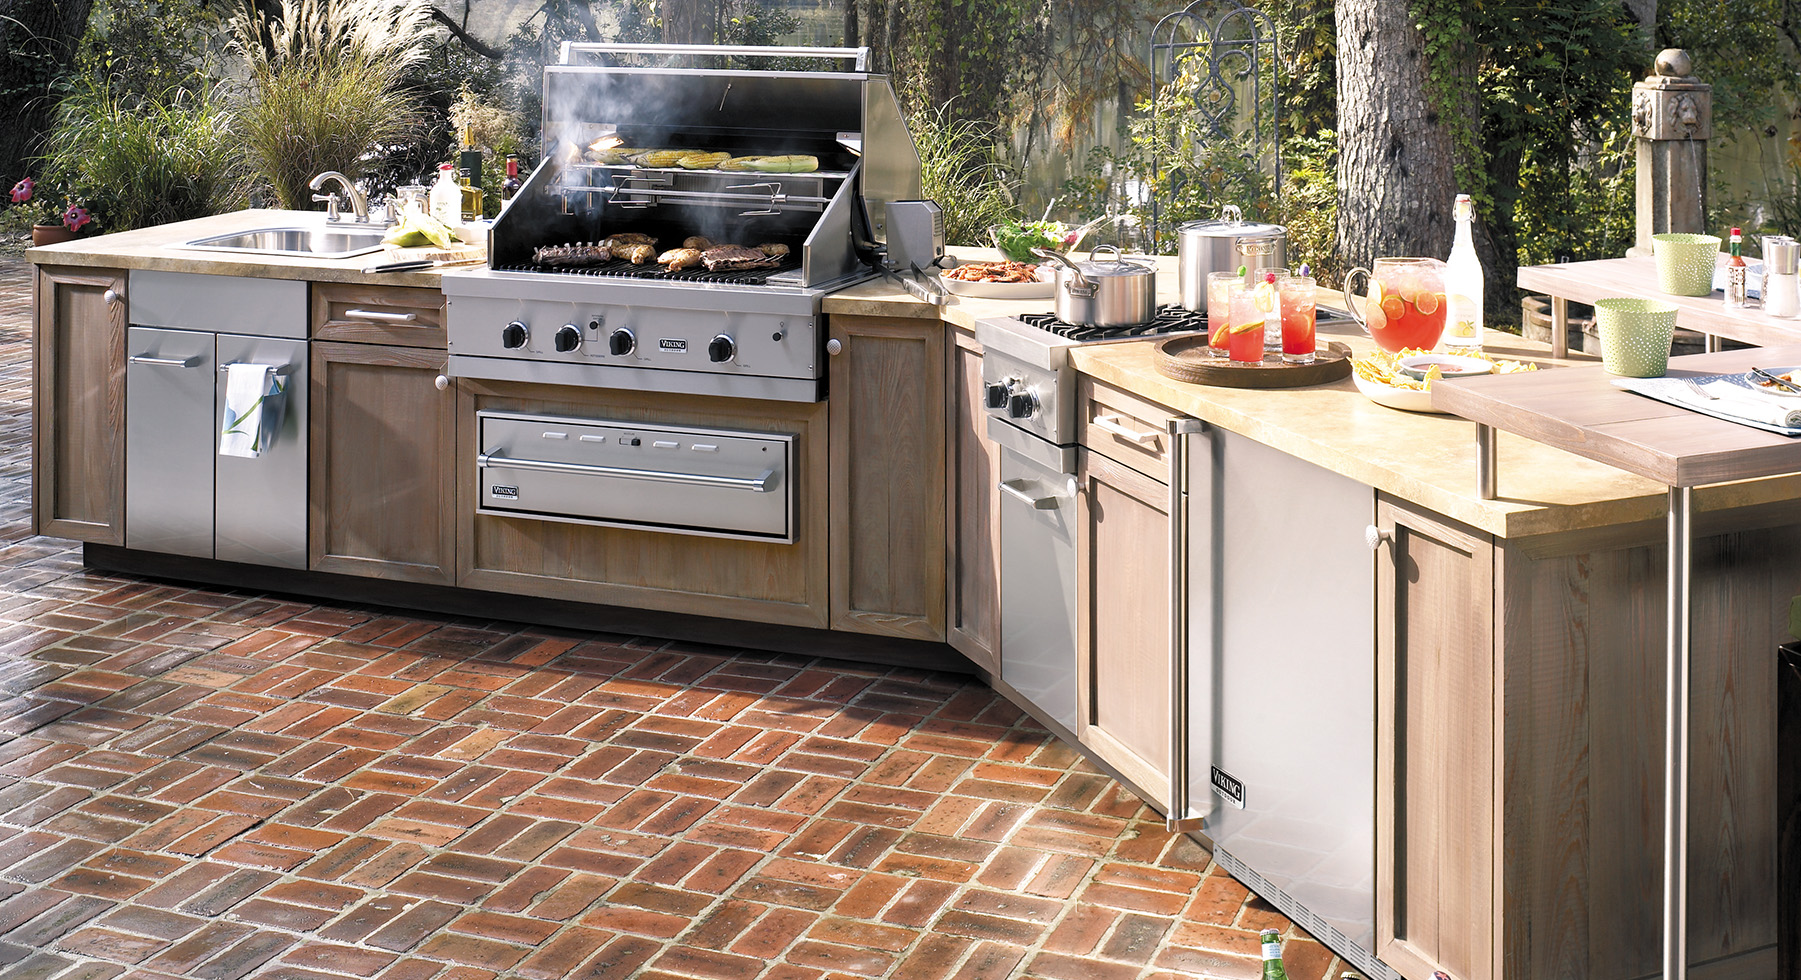 Viking web 3 0 appliance financing appliance service in for Viking outdoor kitchen